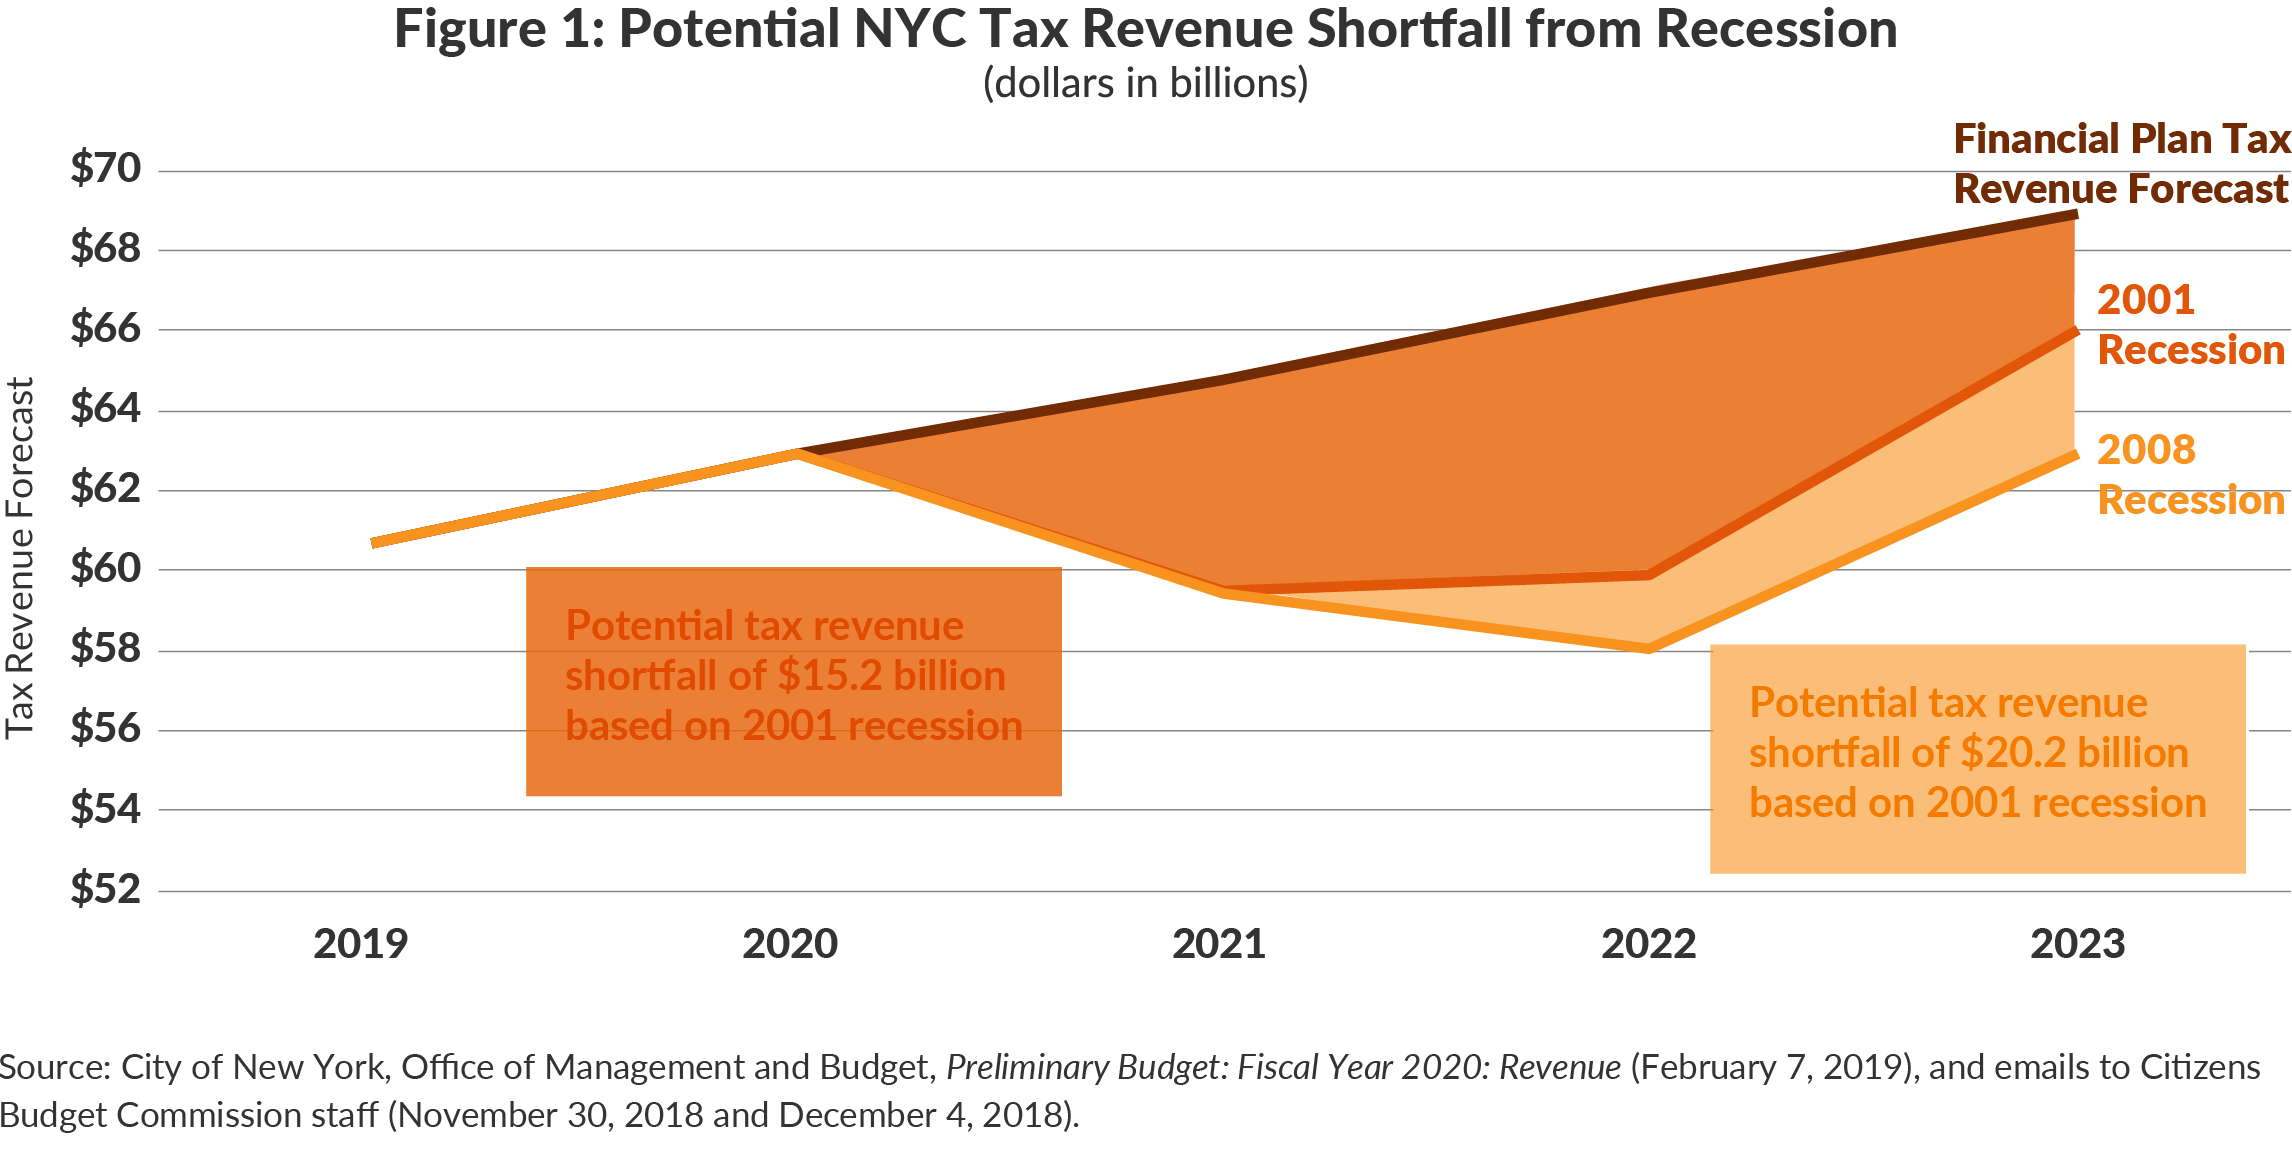 Figure 1: Potential NYC Tax Revenue Shortfall from Recession